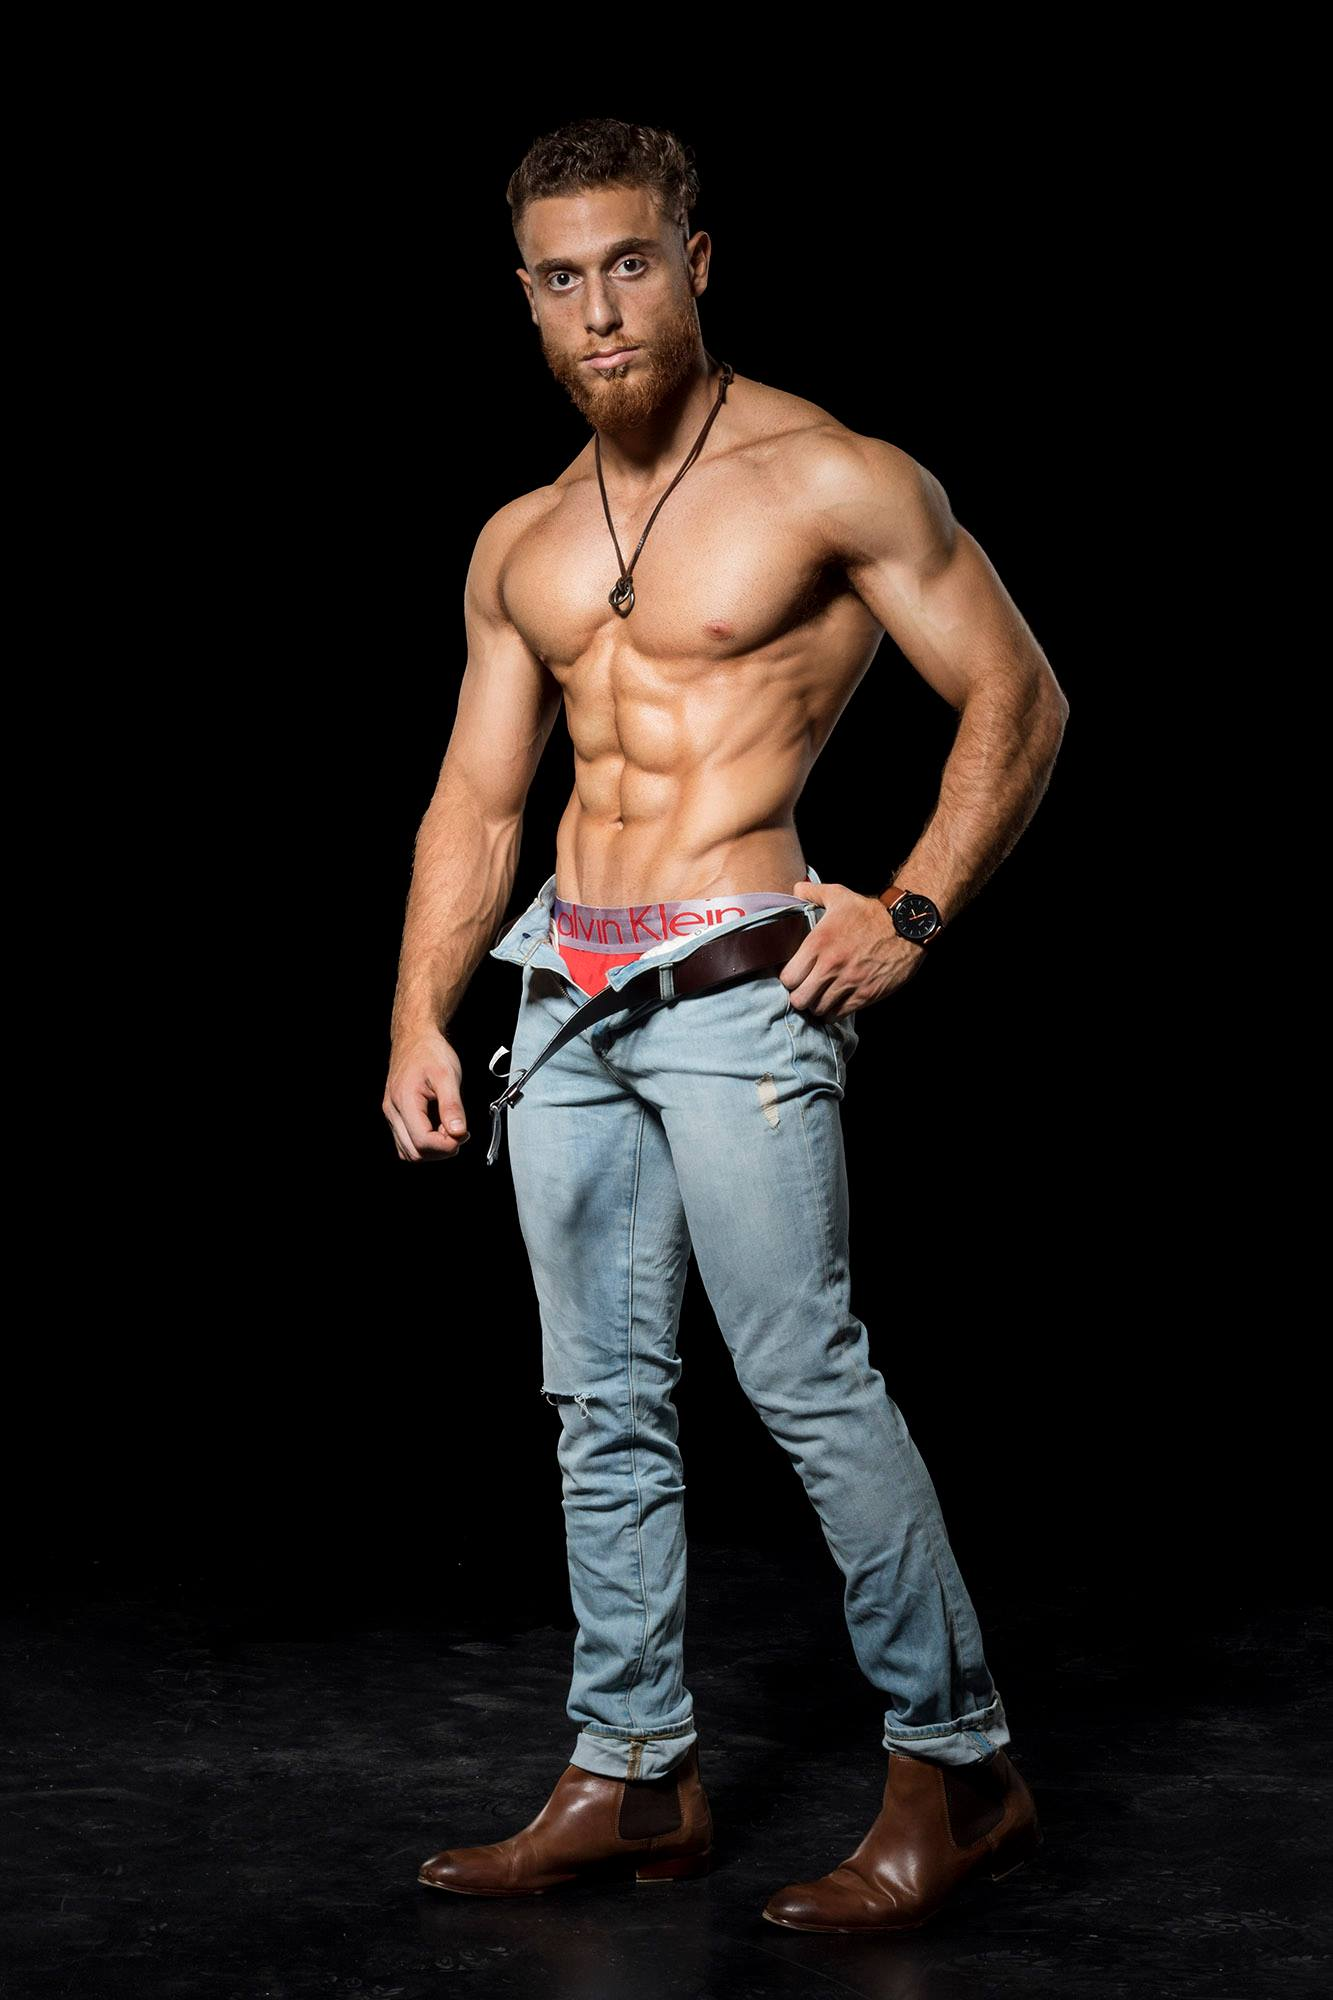 Simple physique pose really carves out the abs.